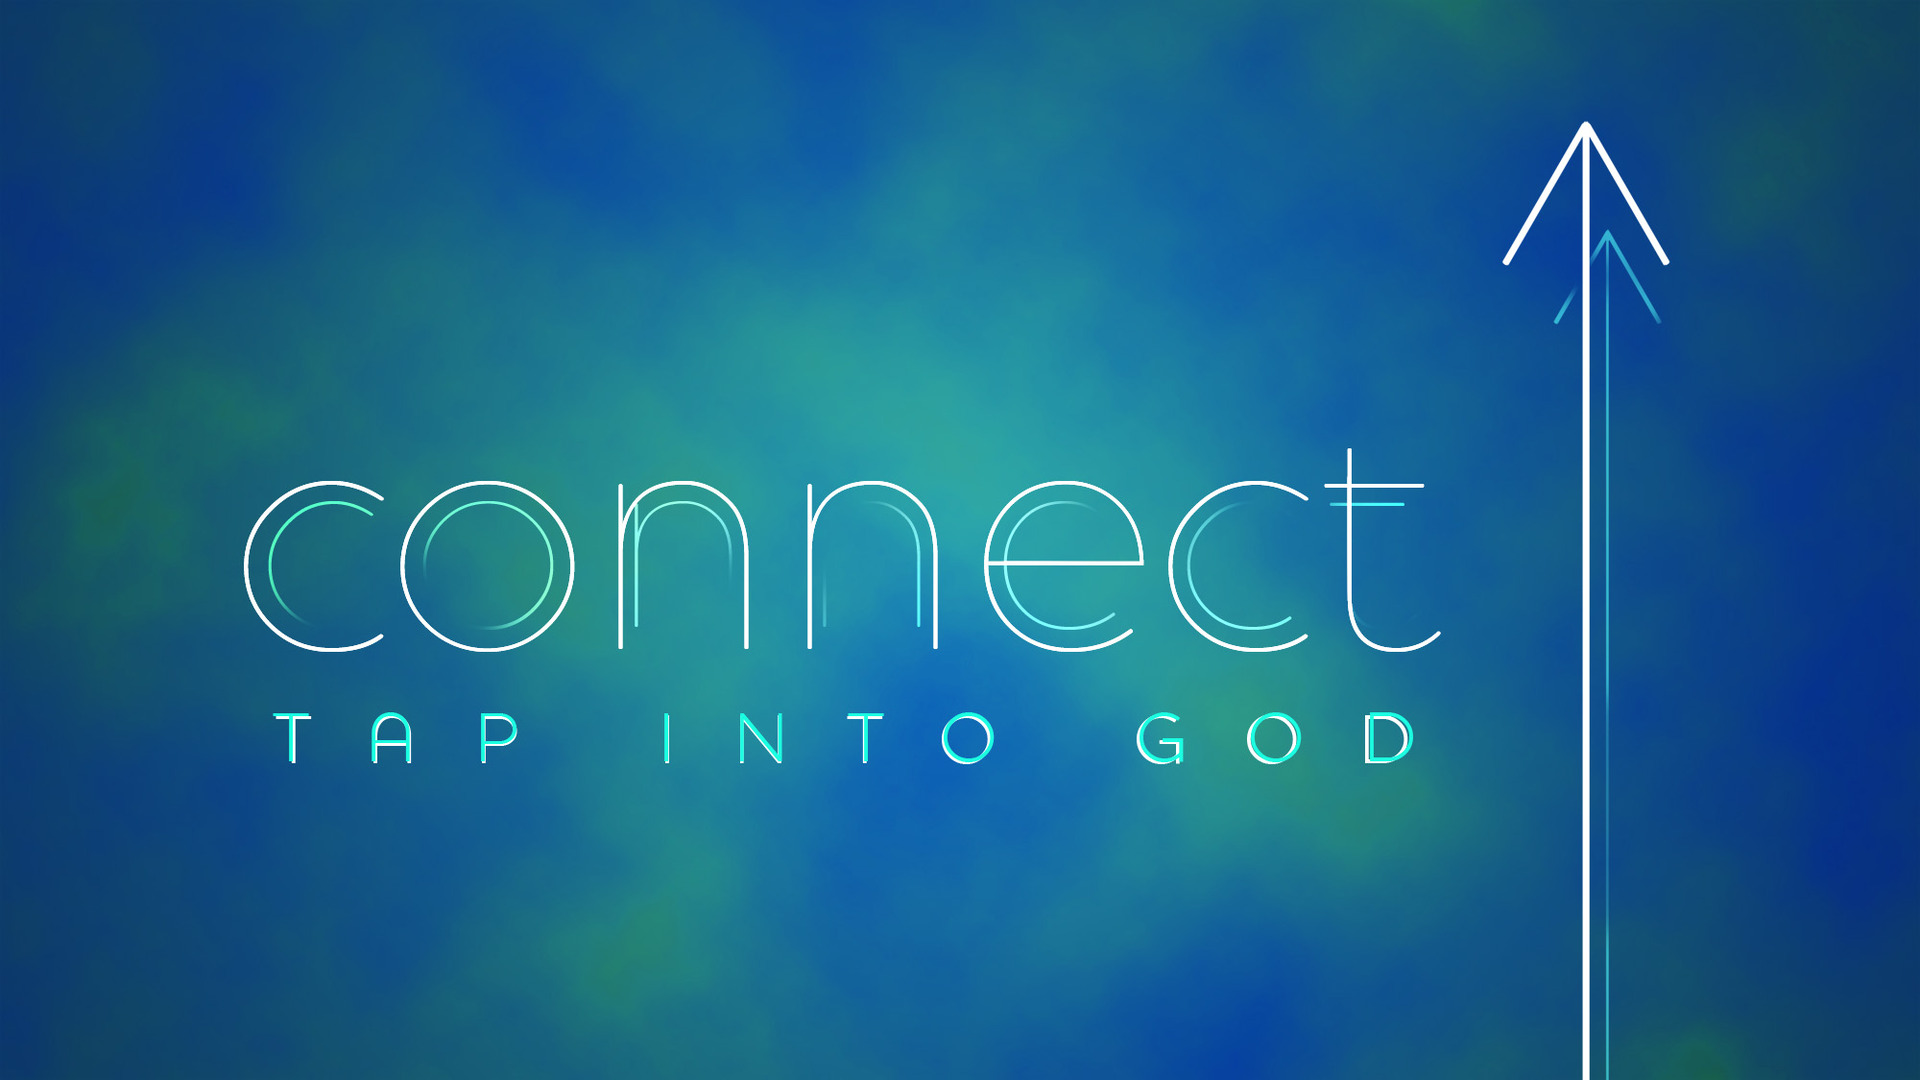 Step 2: Connect - Connect is held the second Sunday of every month in the Family Room at 12:30.